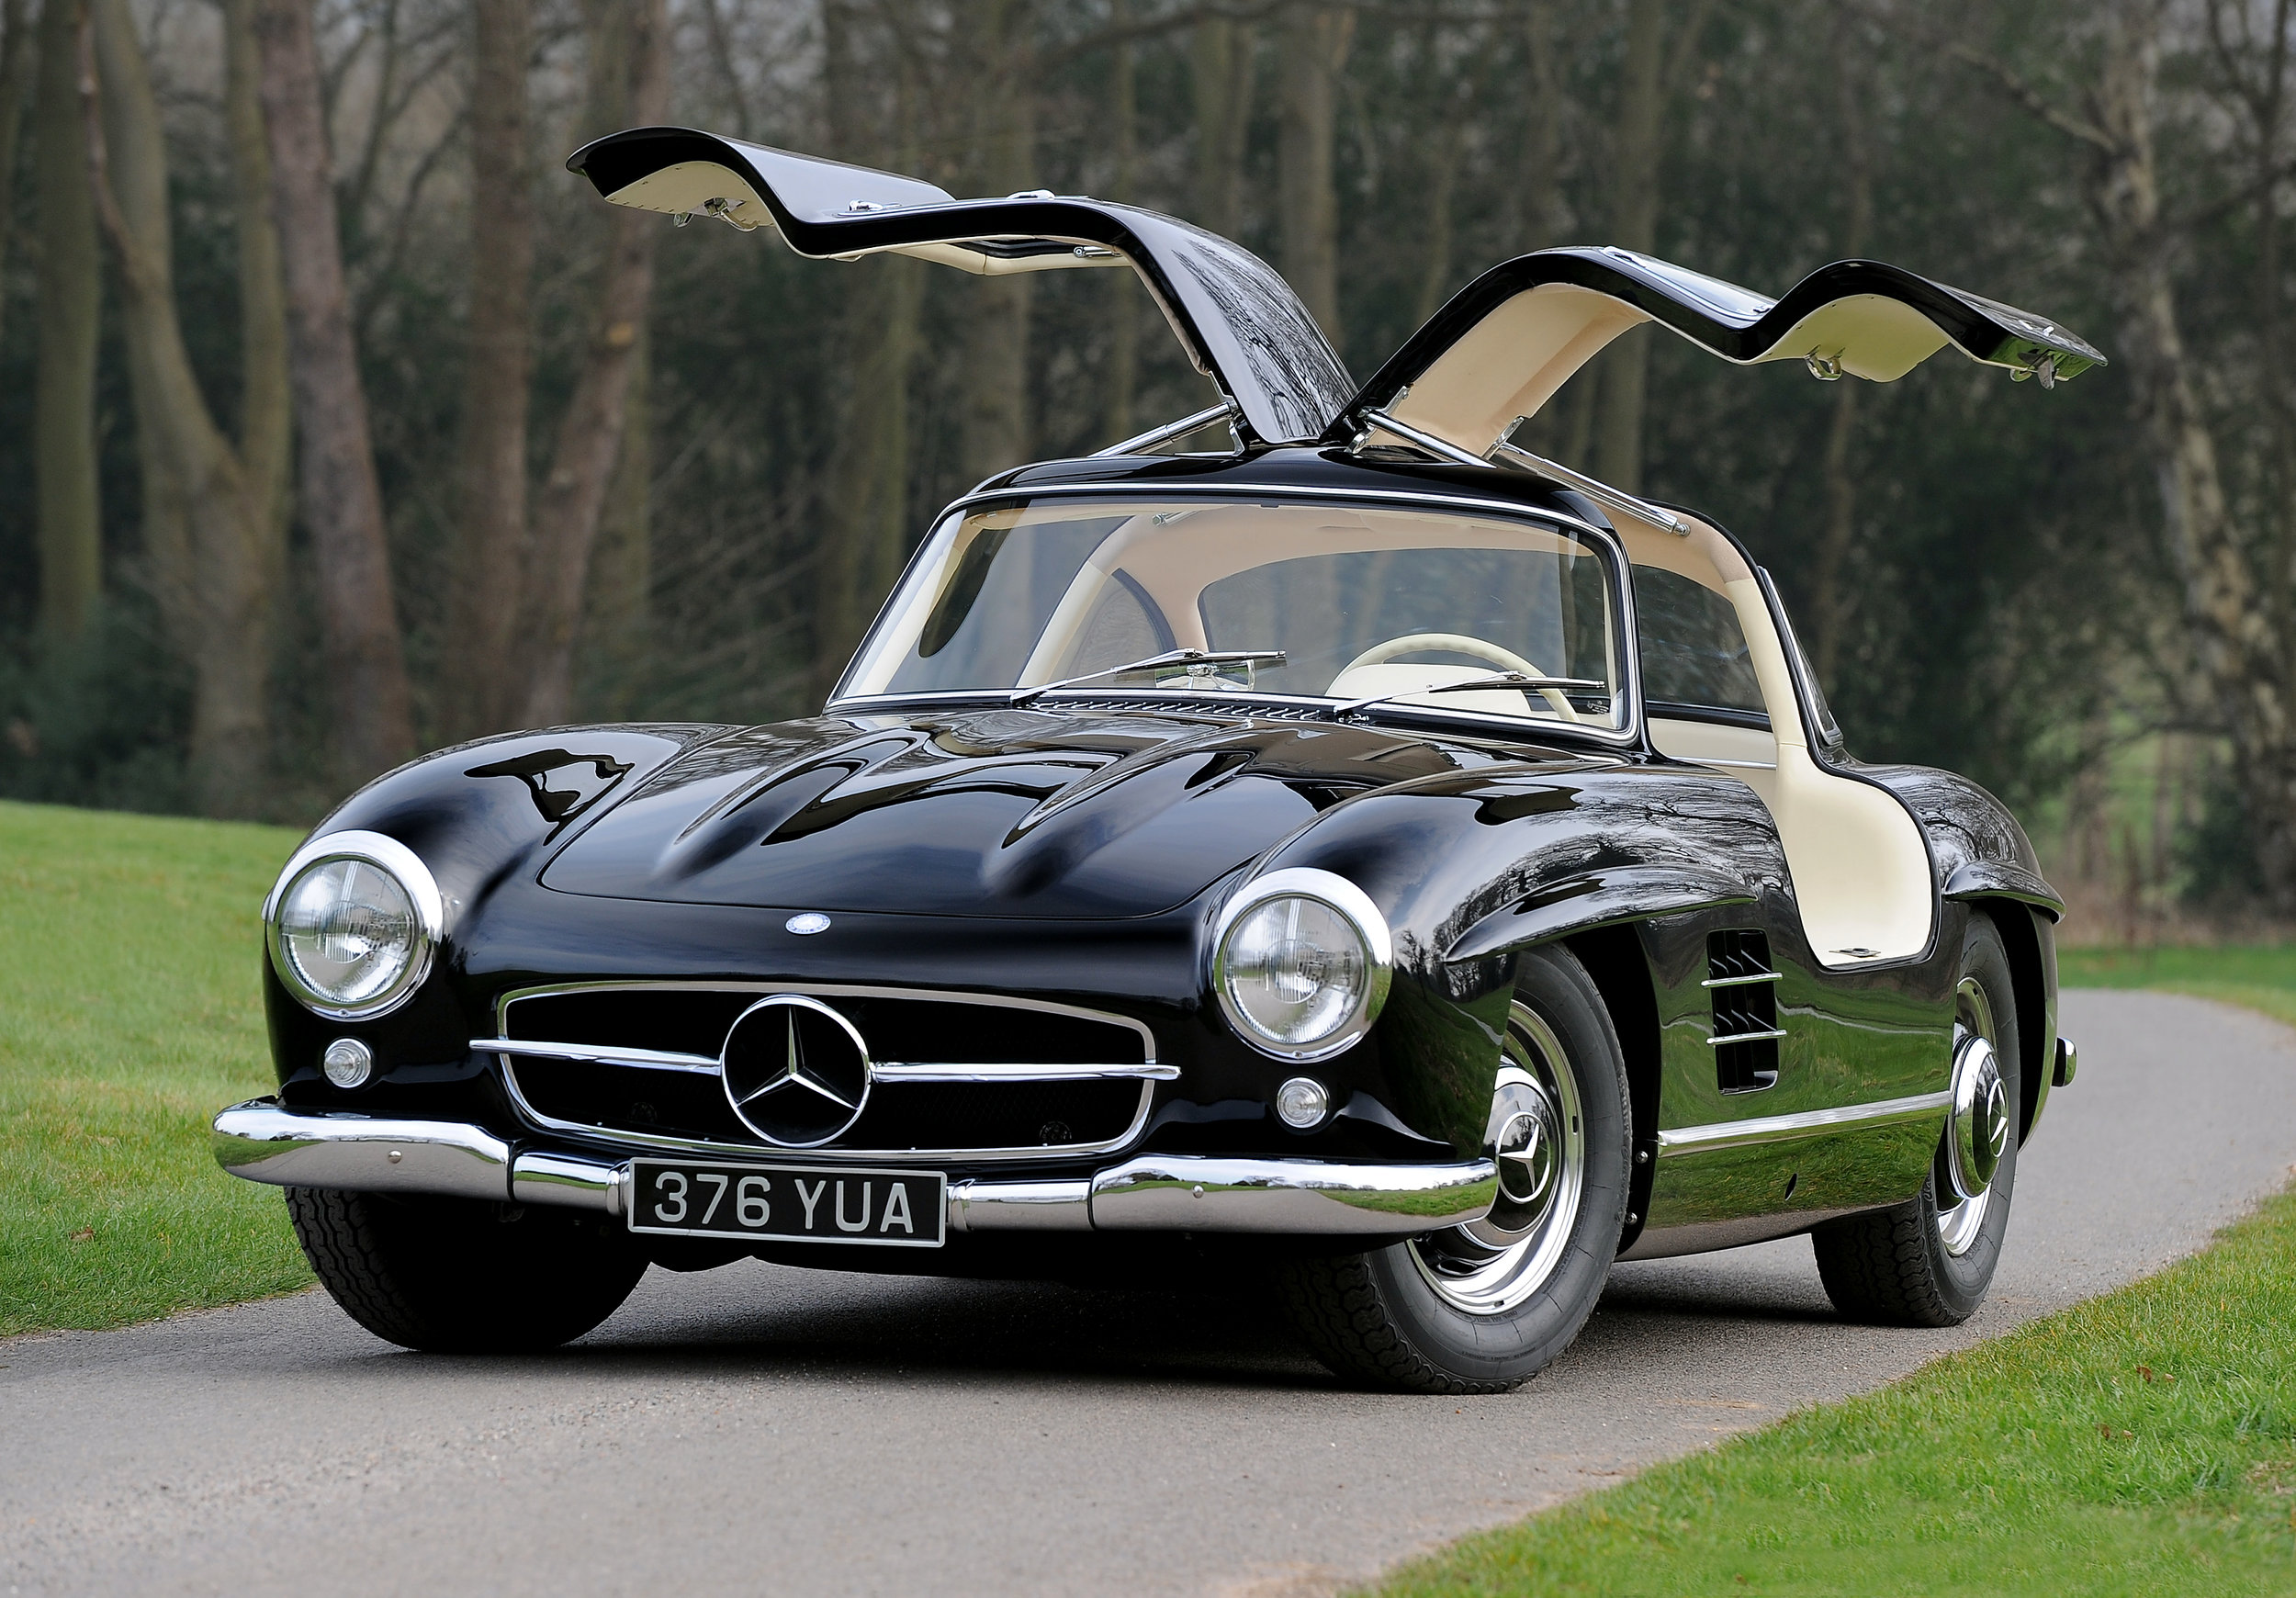 Mercedes 300SL Gullwing - Full ground-up restoration to Concours Winning standard     Learn More